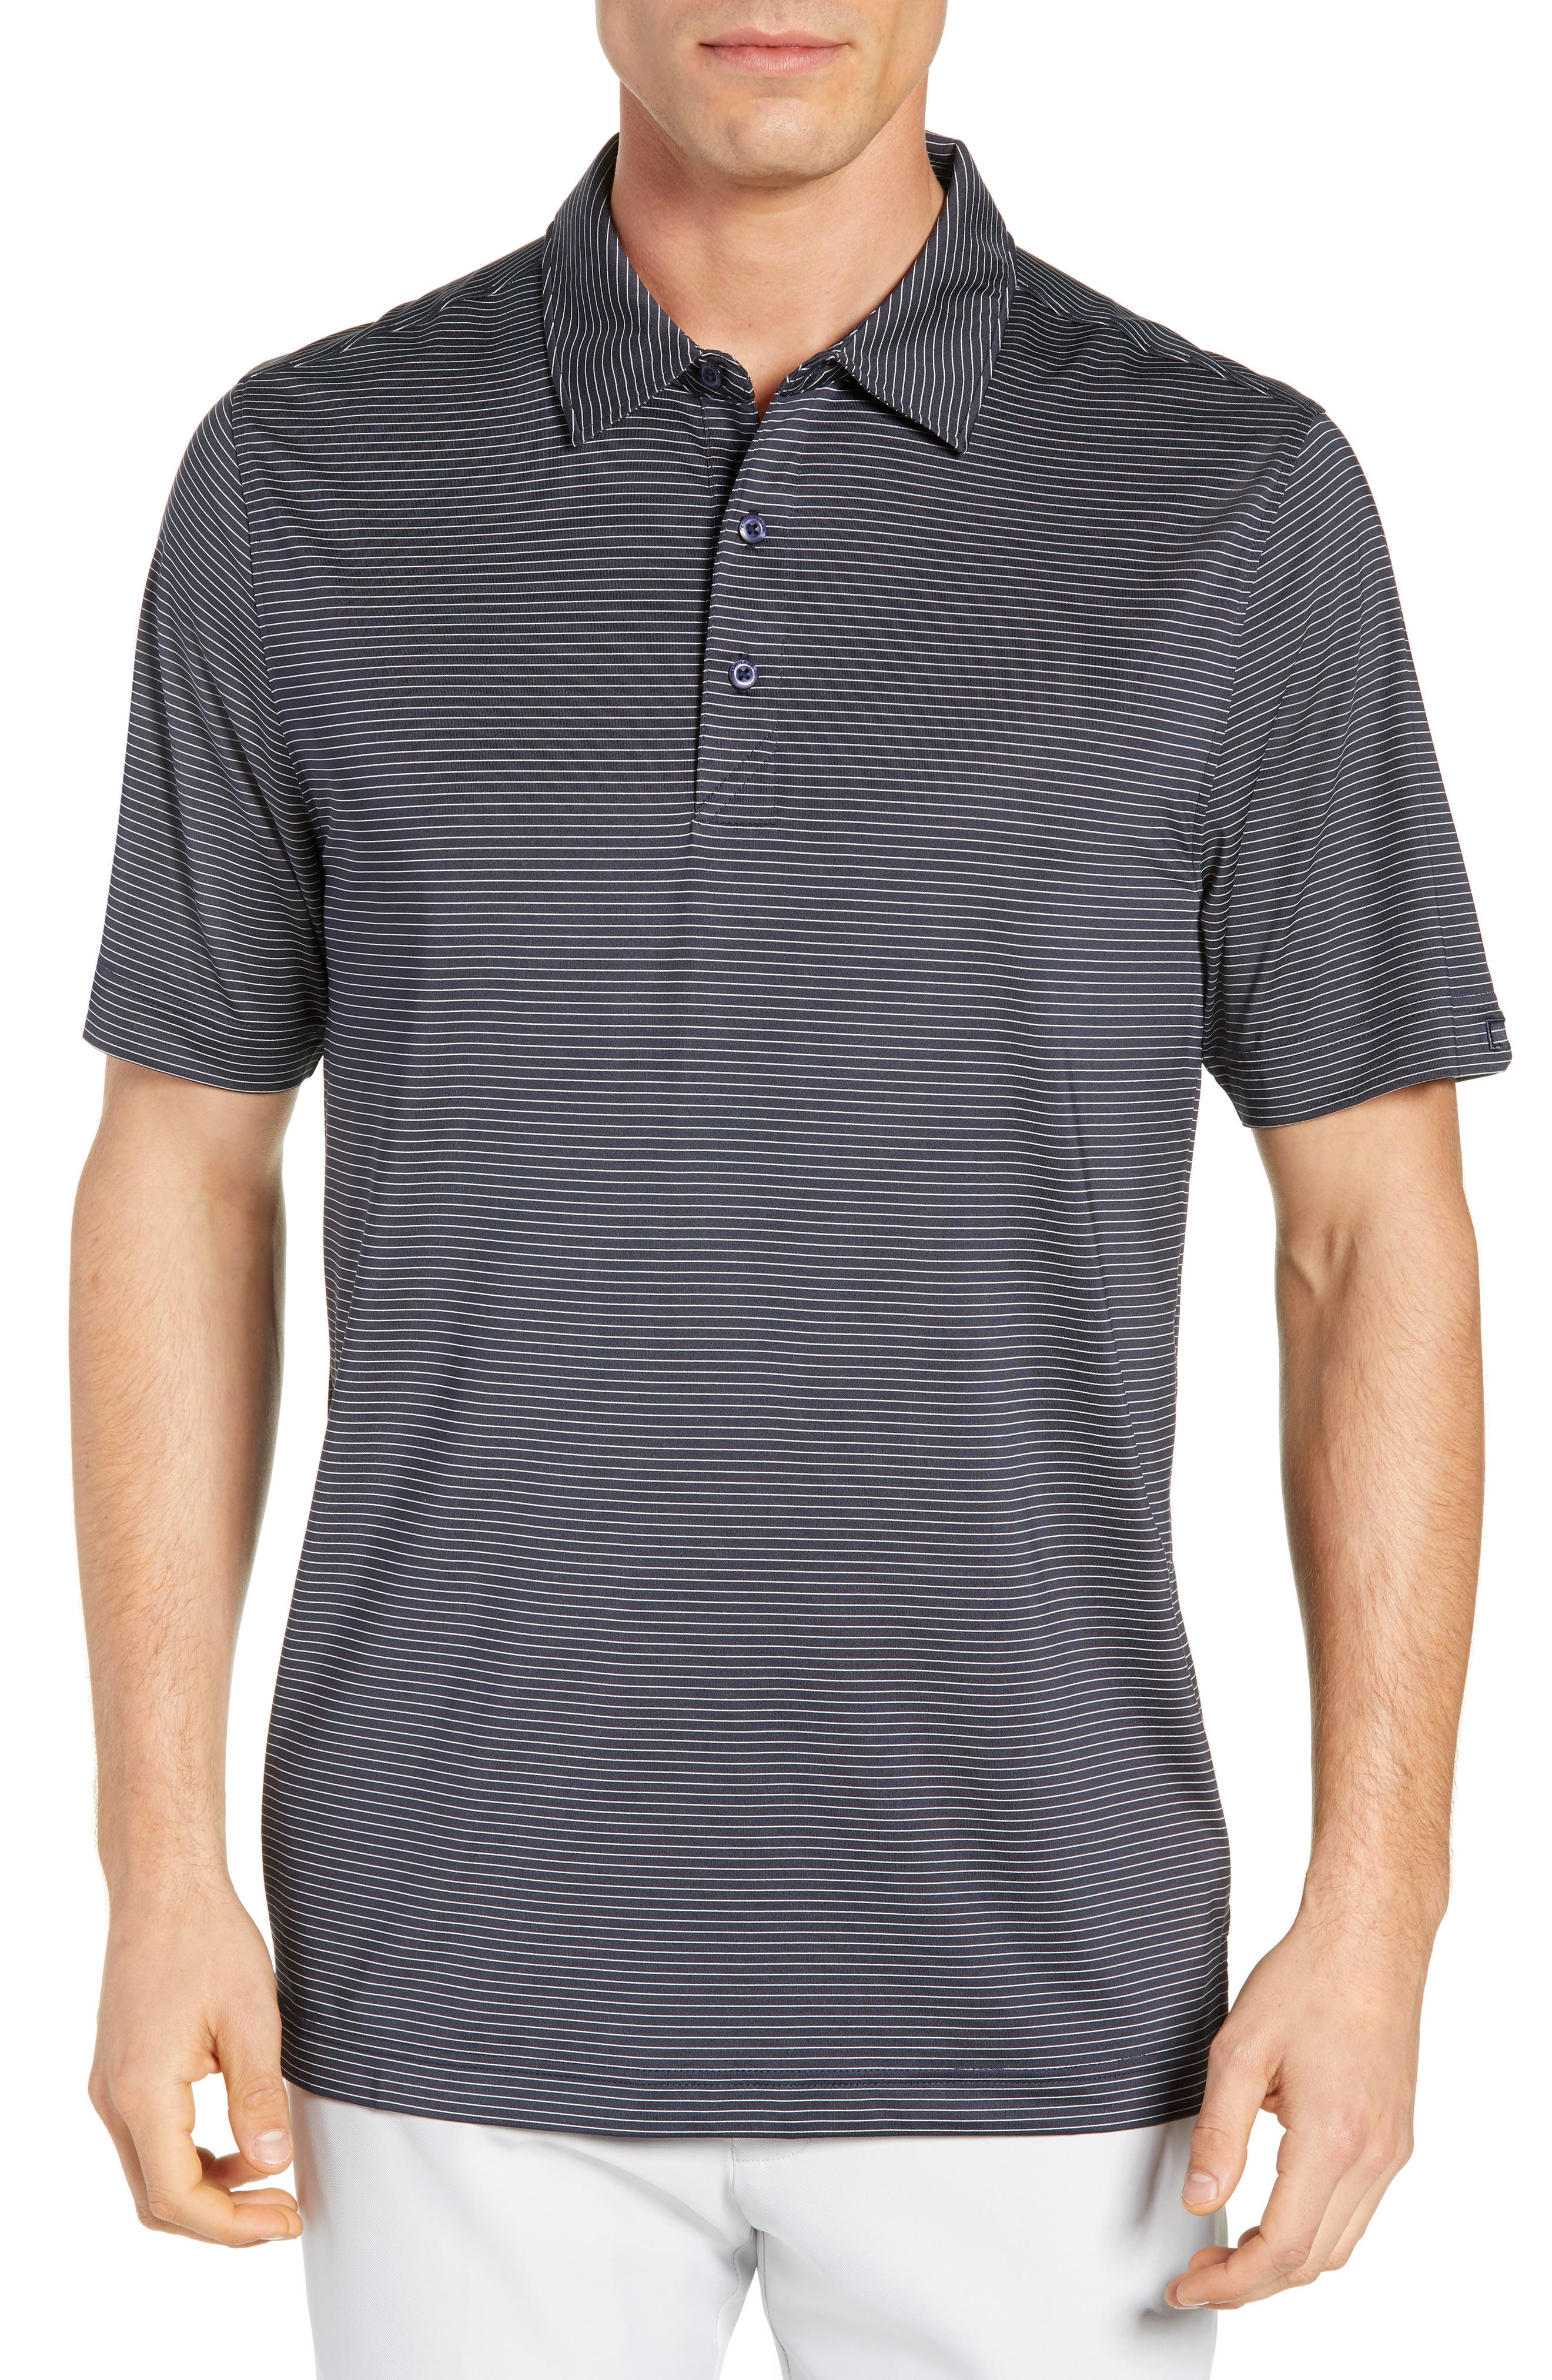 CUTTER & BUCK Prevail Regular Fit Stripe Polo, Main, color, LIBERTY NAVY